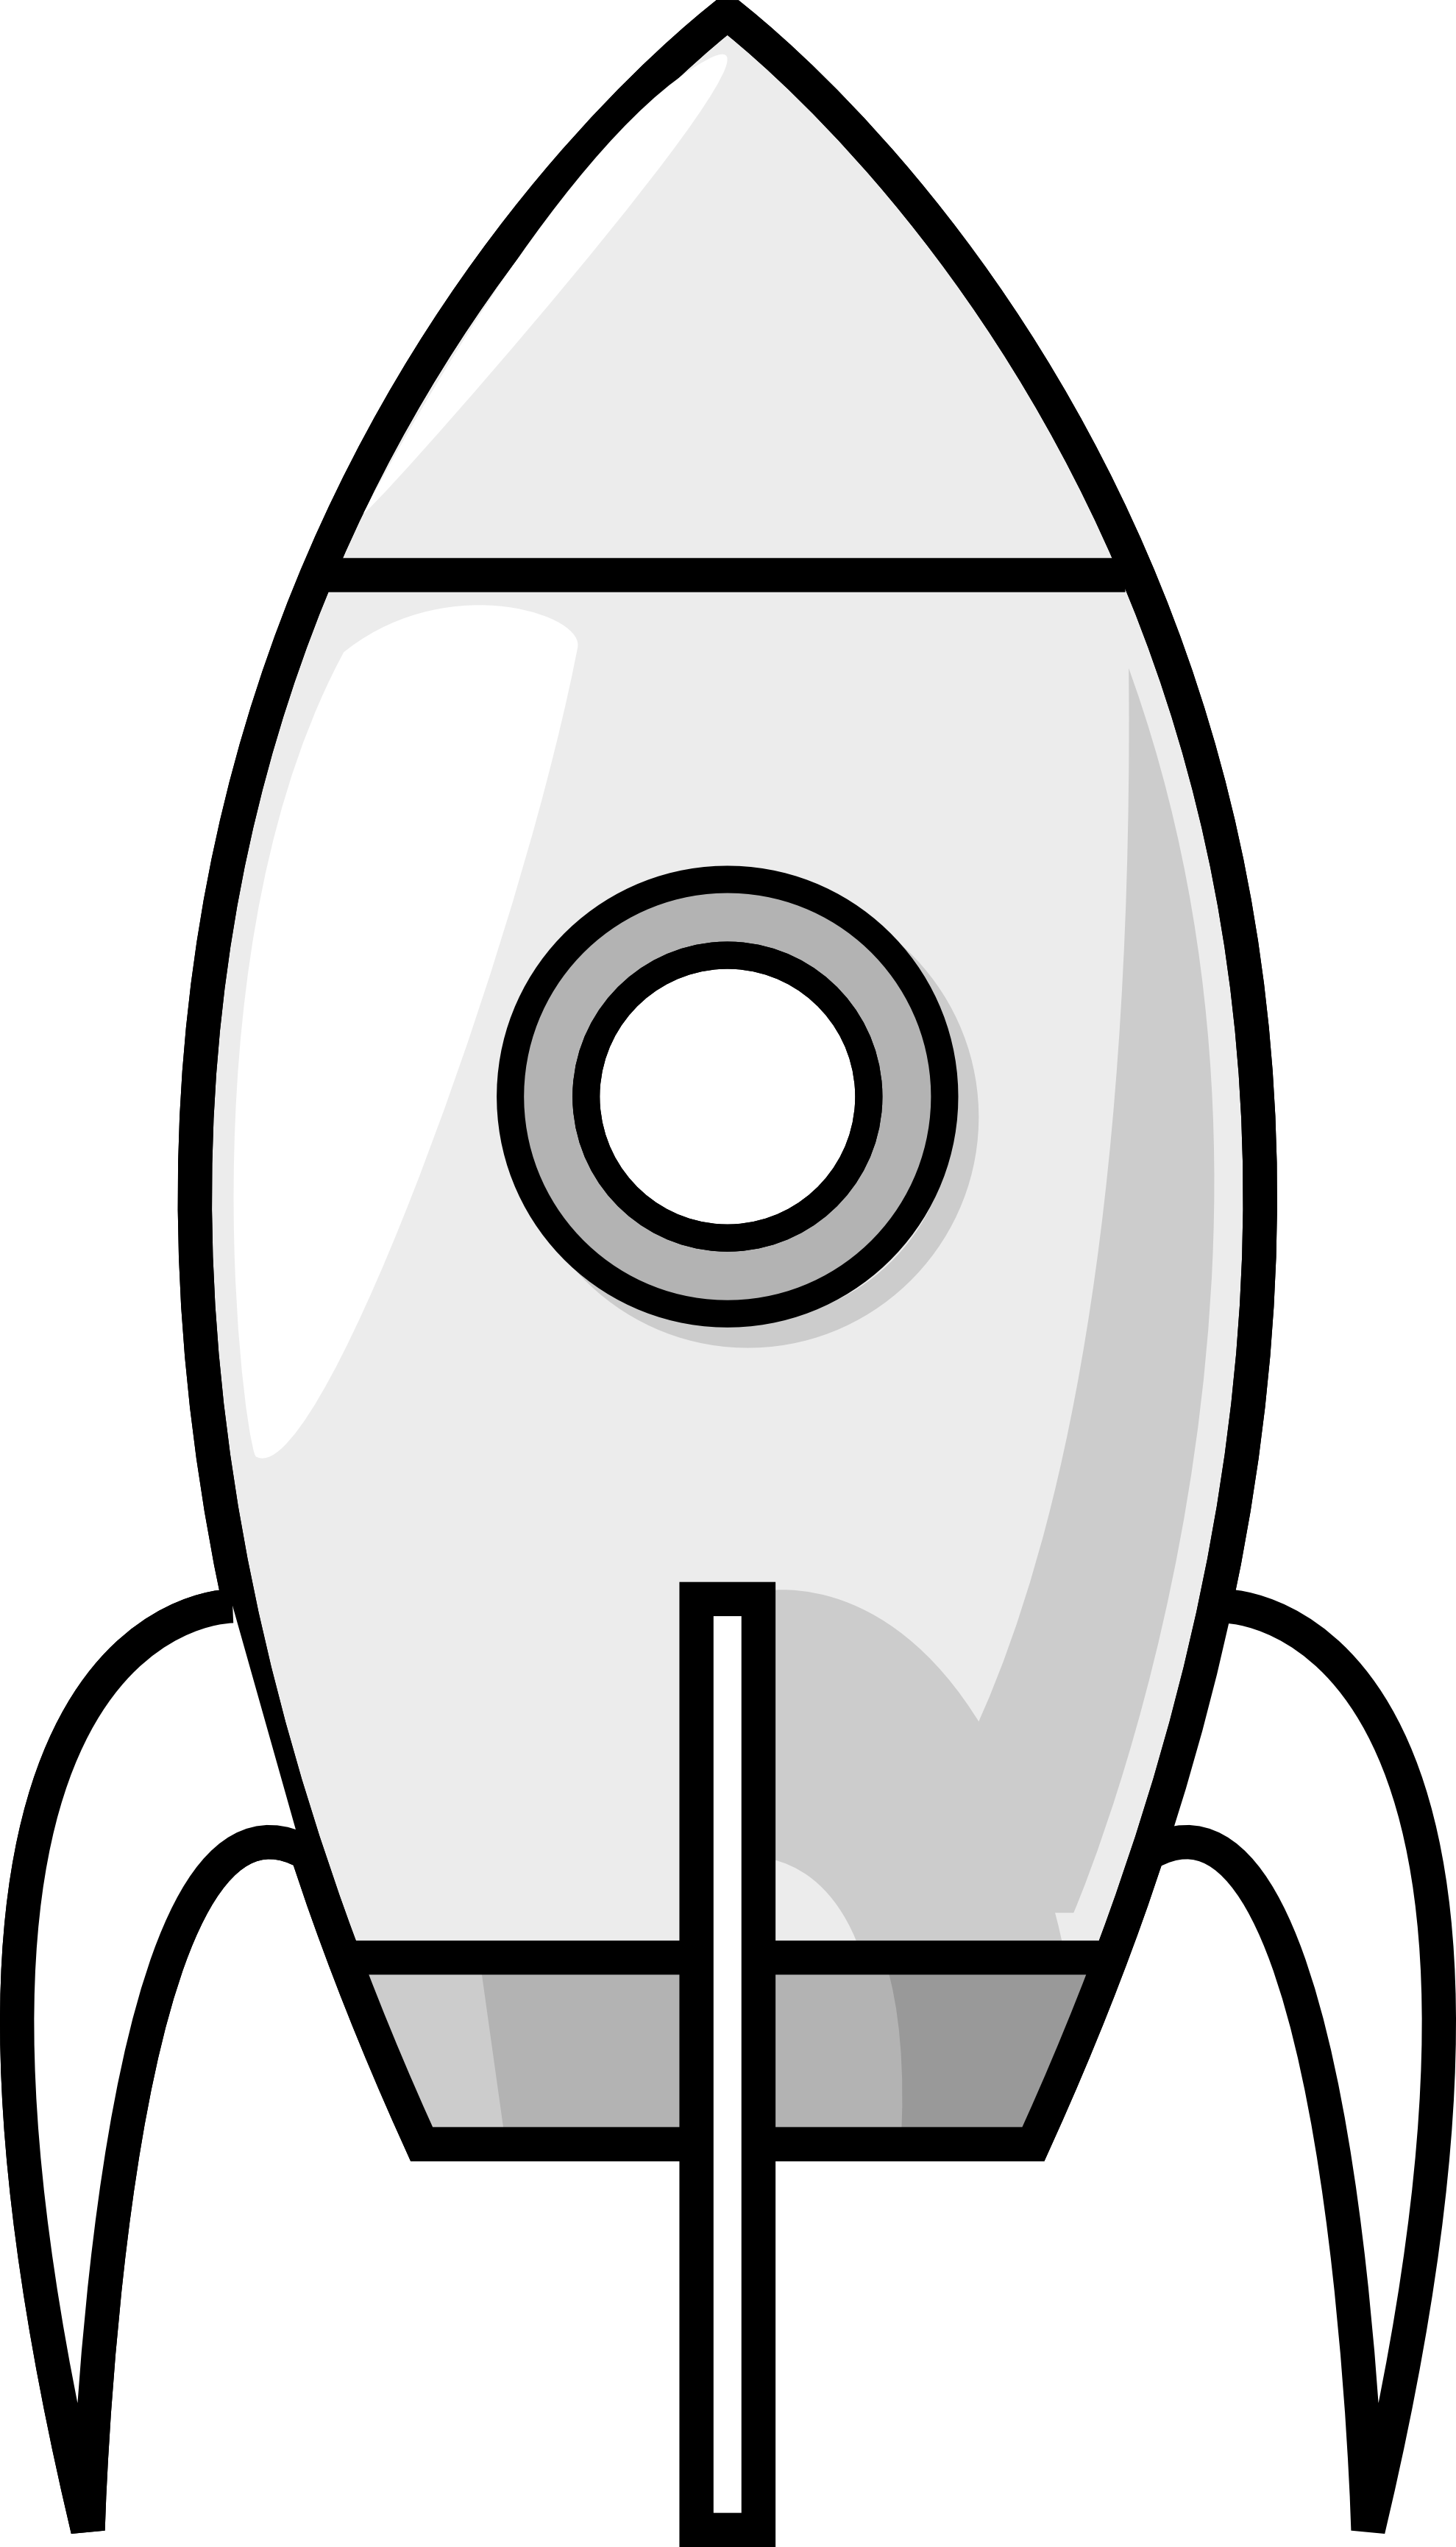 cannon sprite clear background png